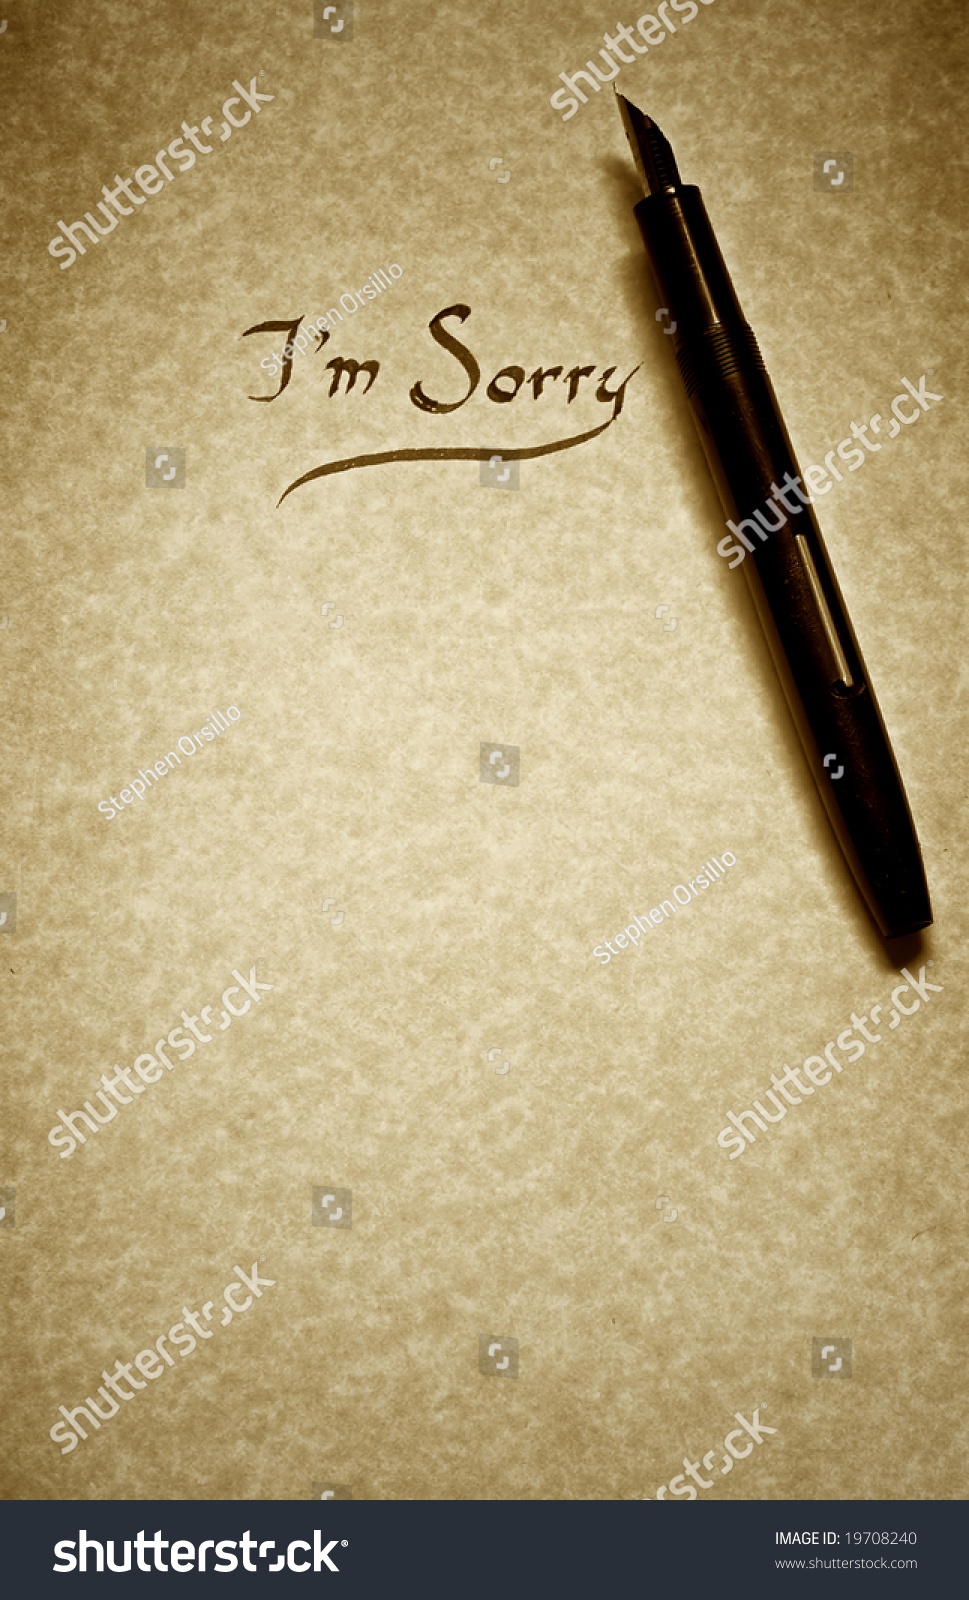 Sorry Letter Being Written Calligraphy On Imagen De